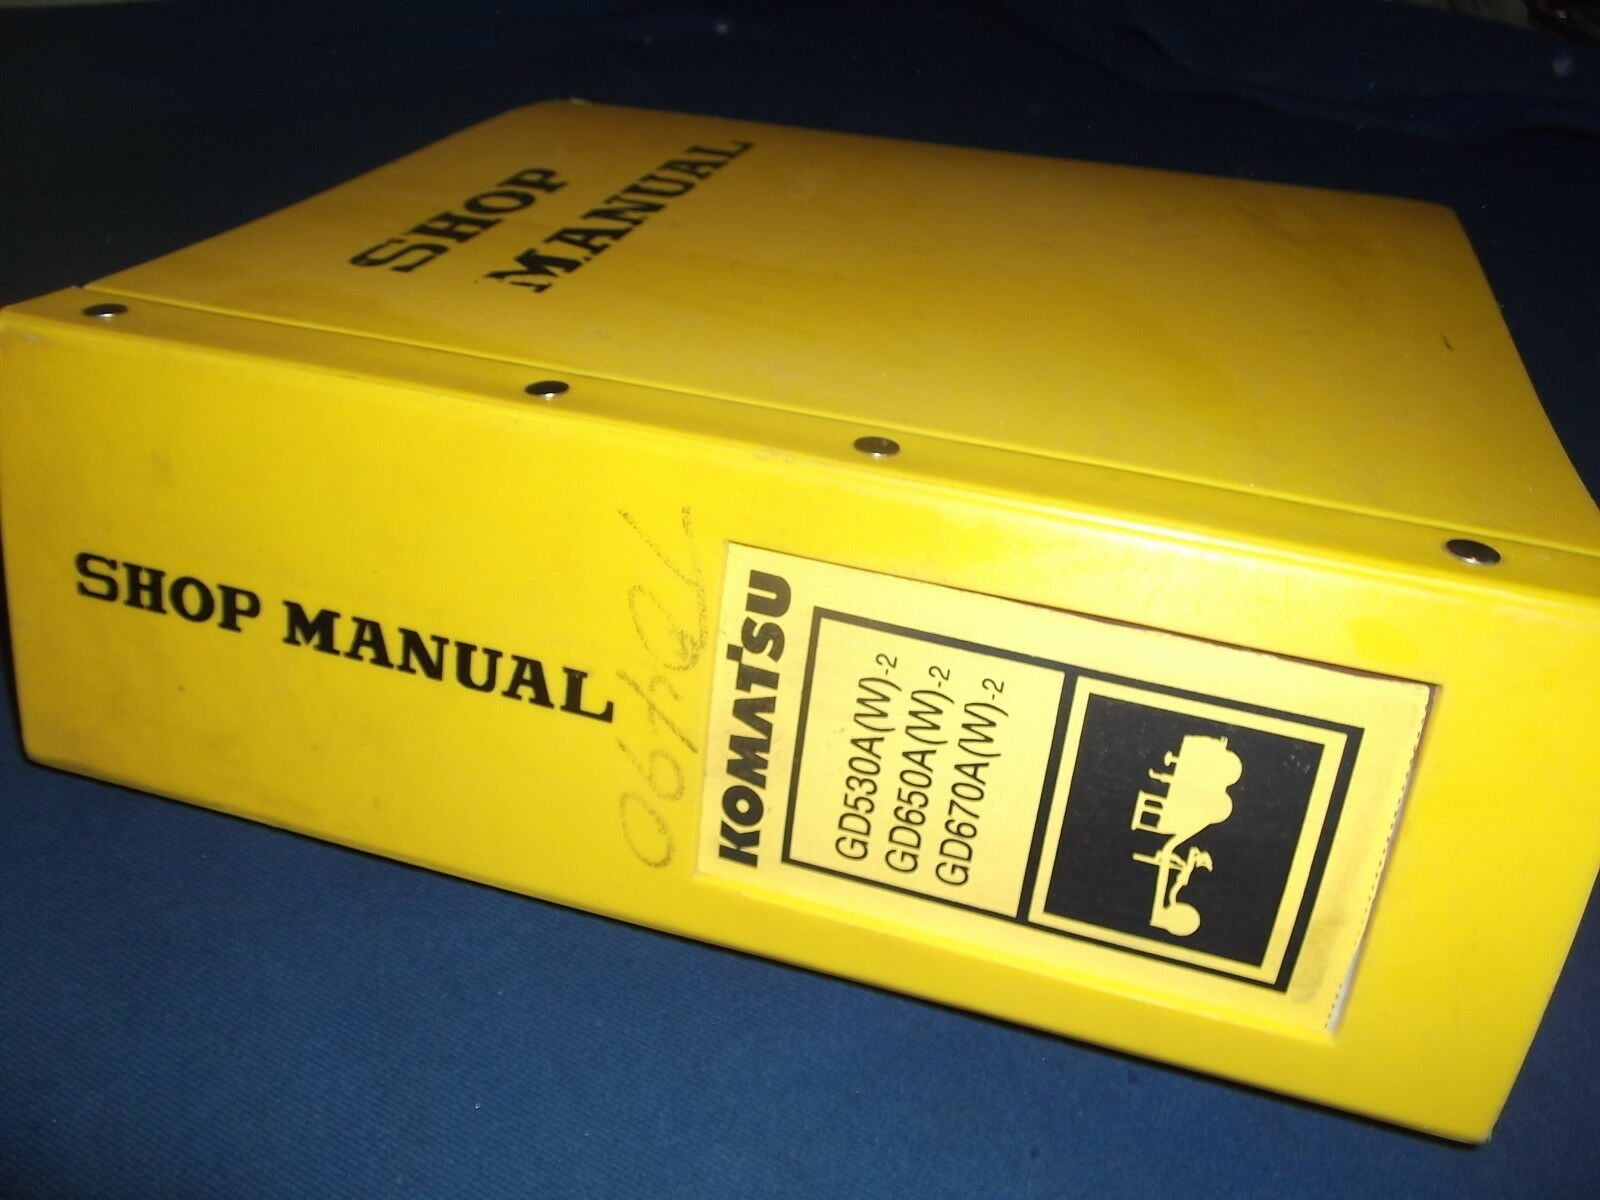 Komatsu Gd530A Gd650A Gd670A (W)-2 Motor Grader Service Shop Repair Book  Manual 1 of 4Only 1 available See More